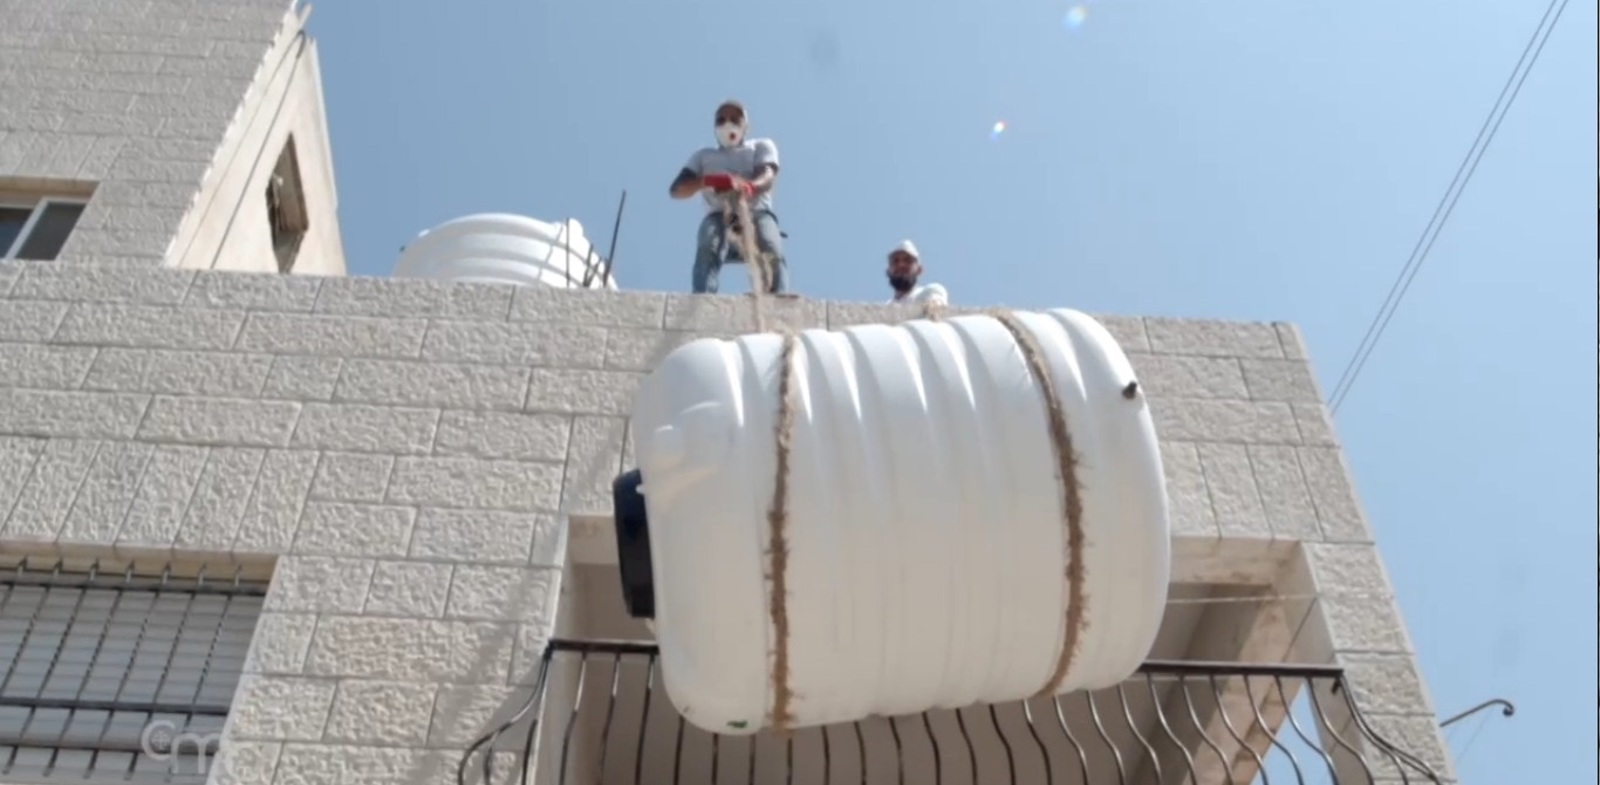 FHL's Water Tank Project more vital than ever